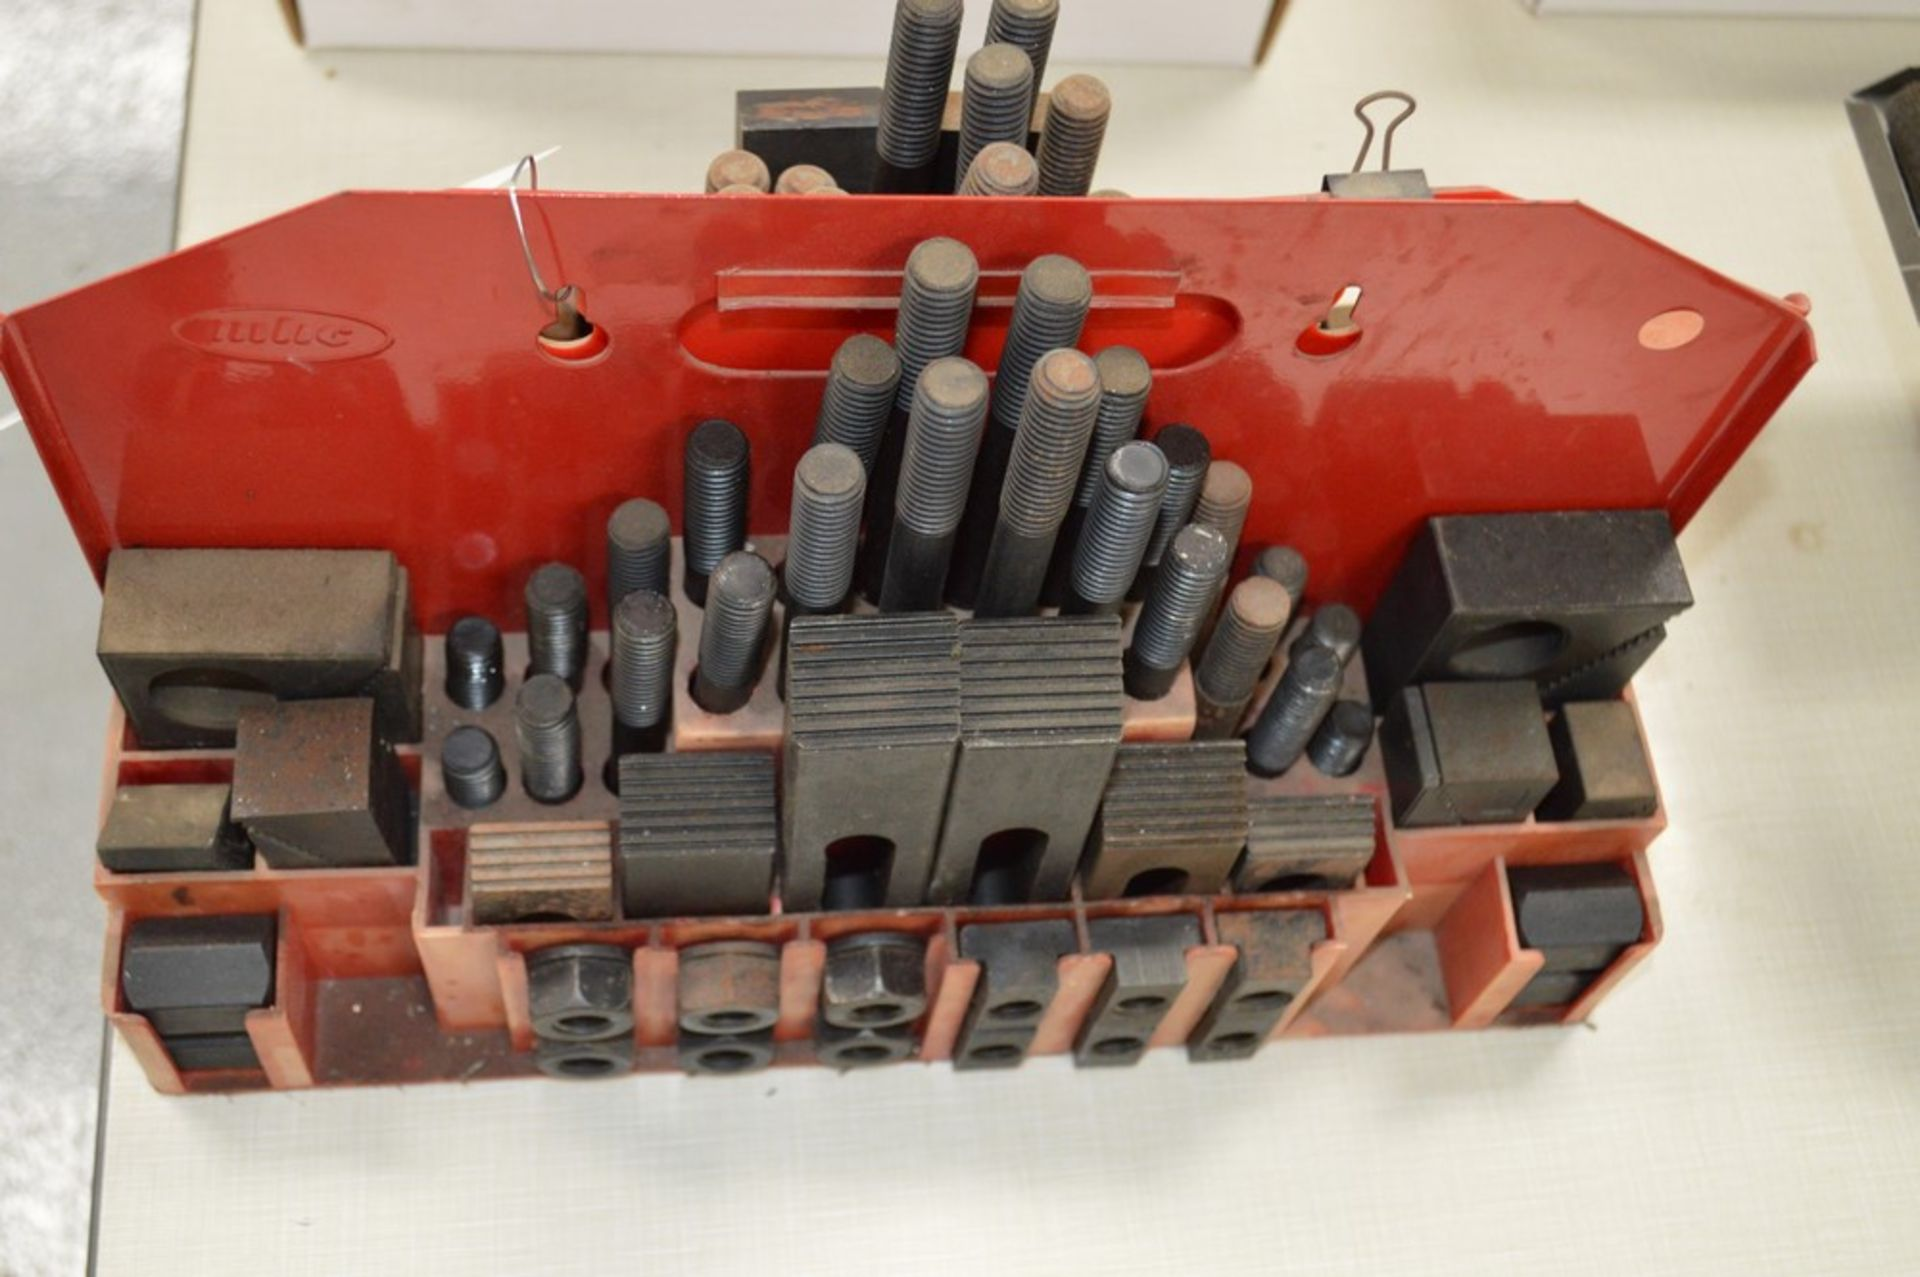 (2) partial mill setup kits with red metal holders - Image 2 of 3